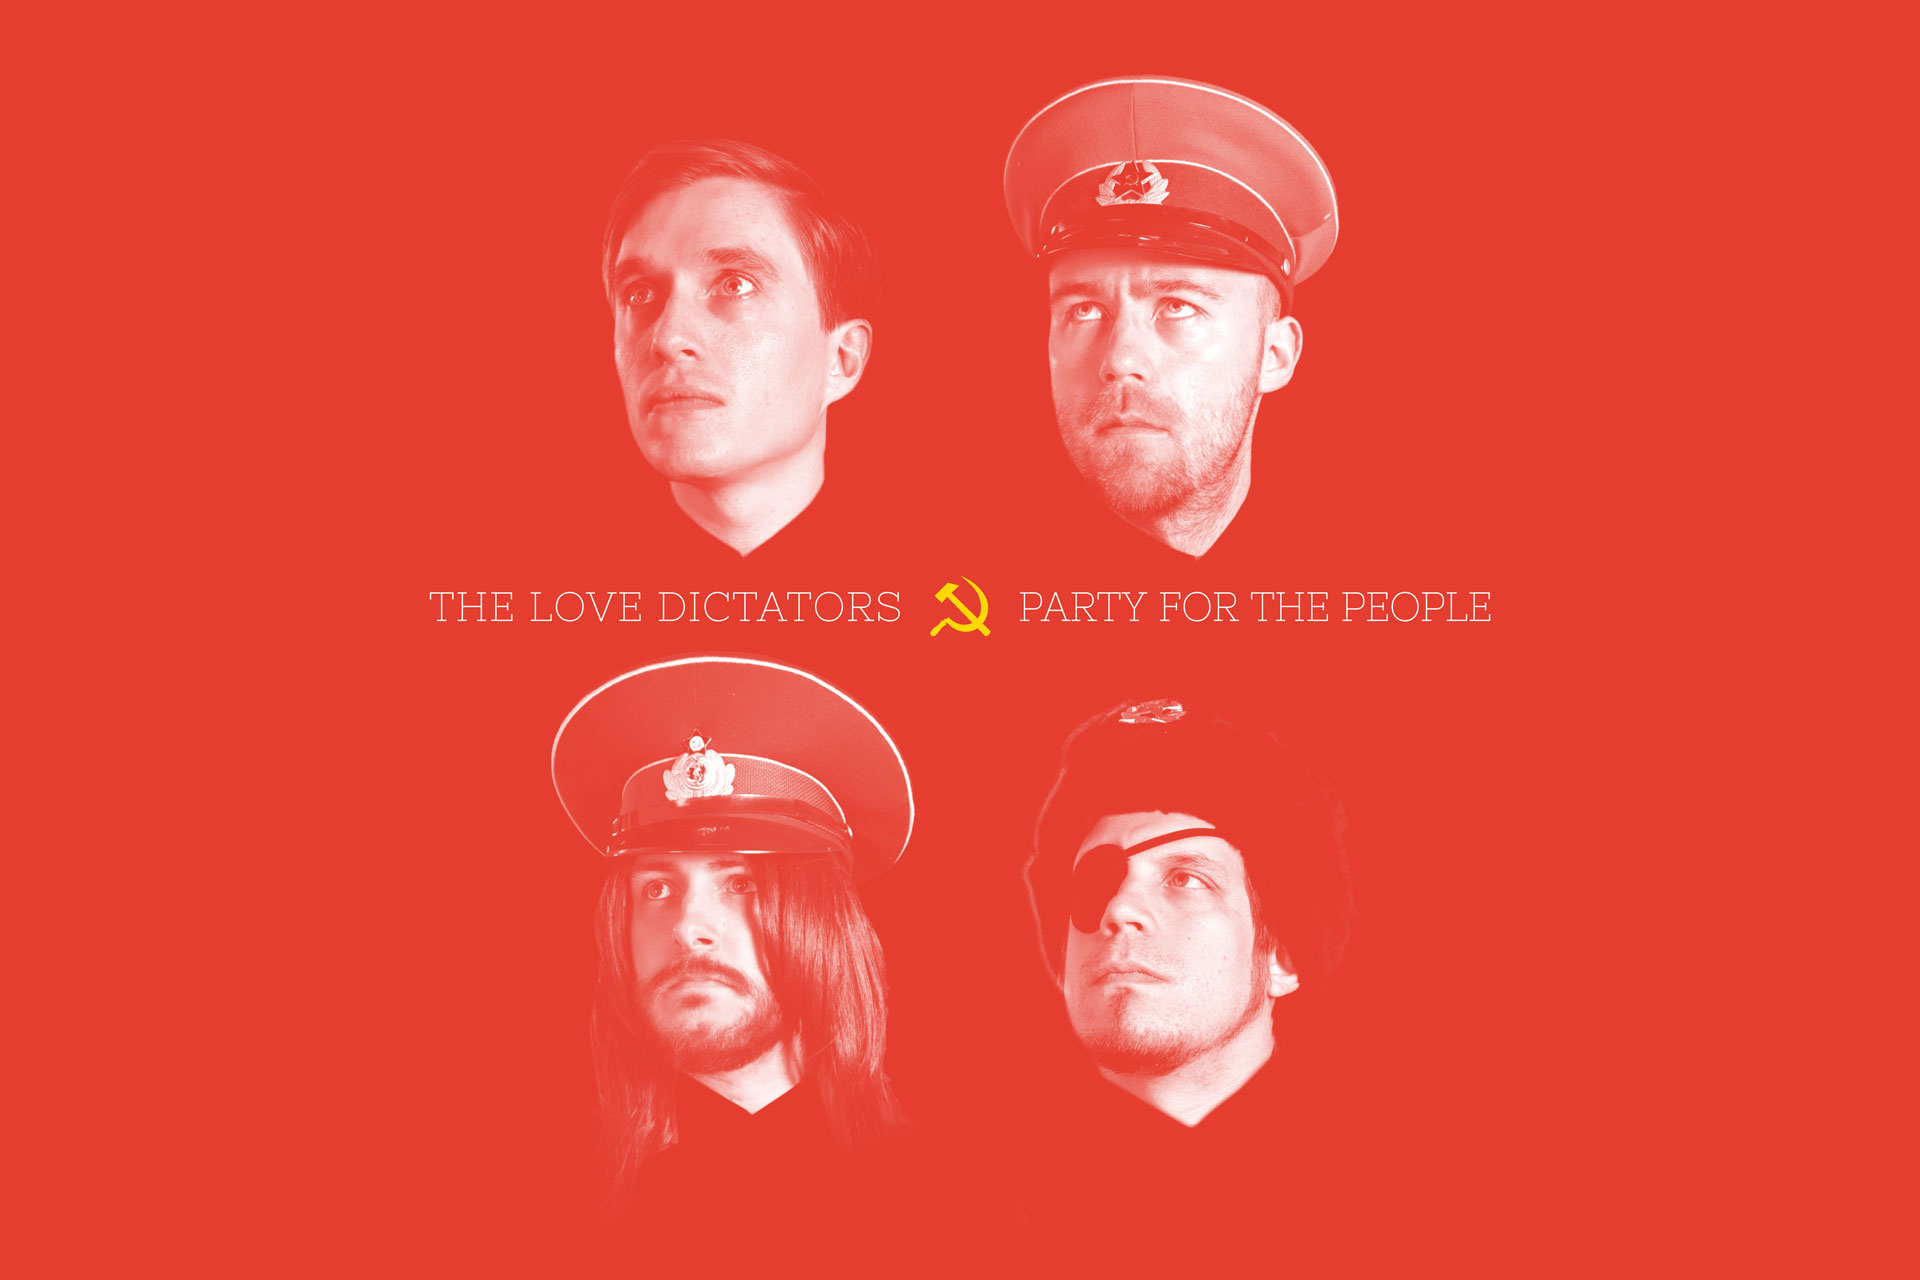 Party for the People Album Artwork